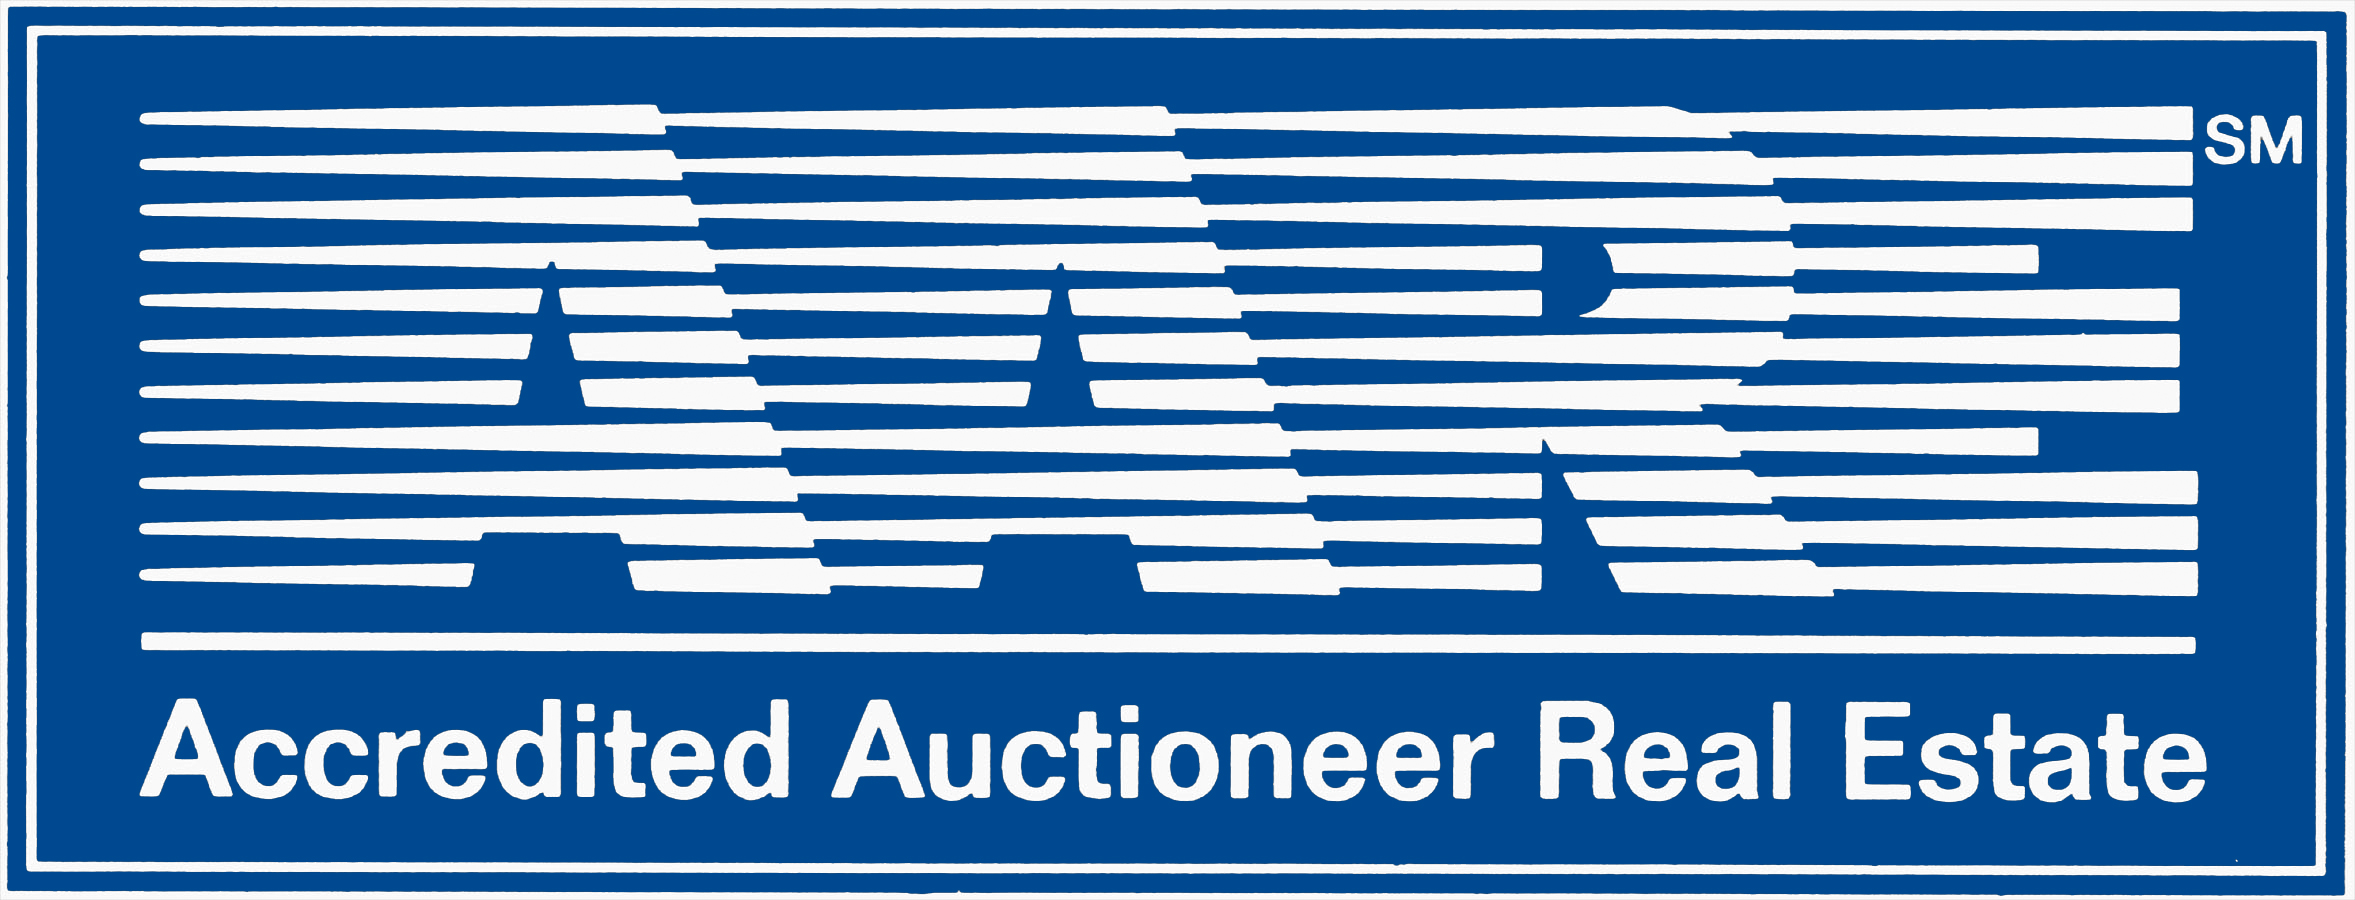 Accredited Auctioneer Real Estate